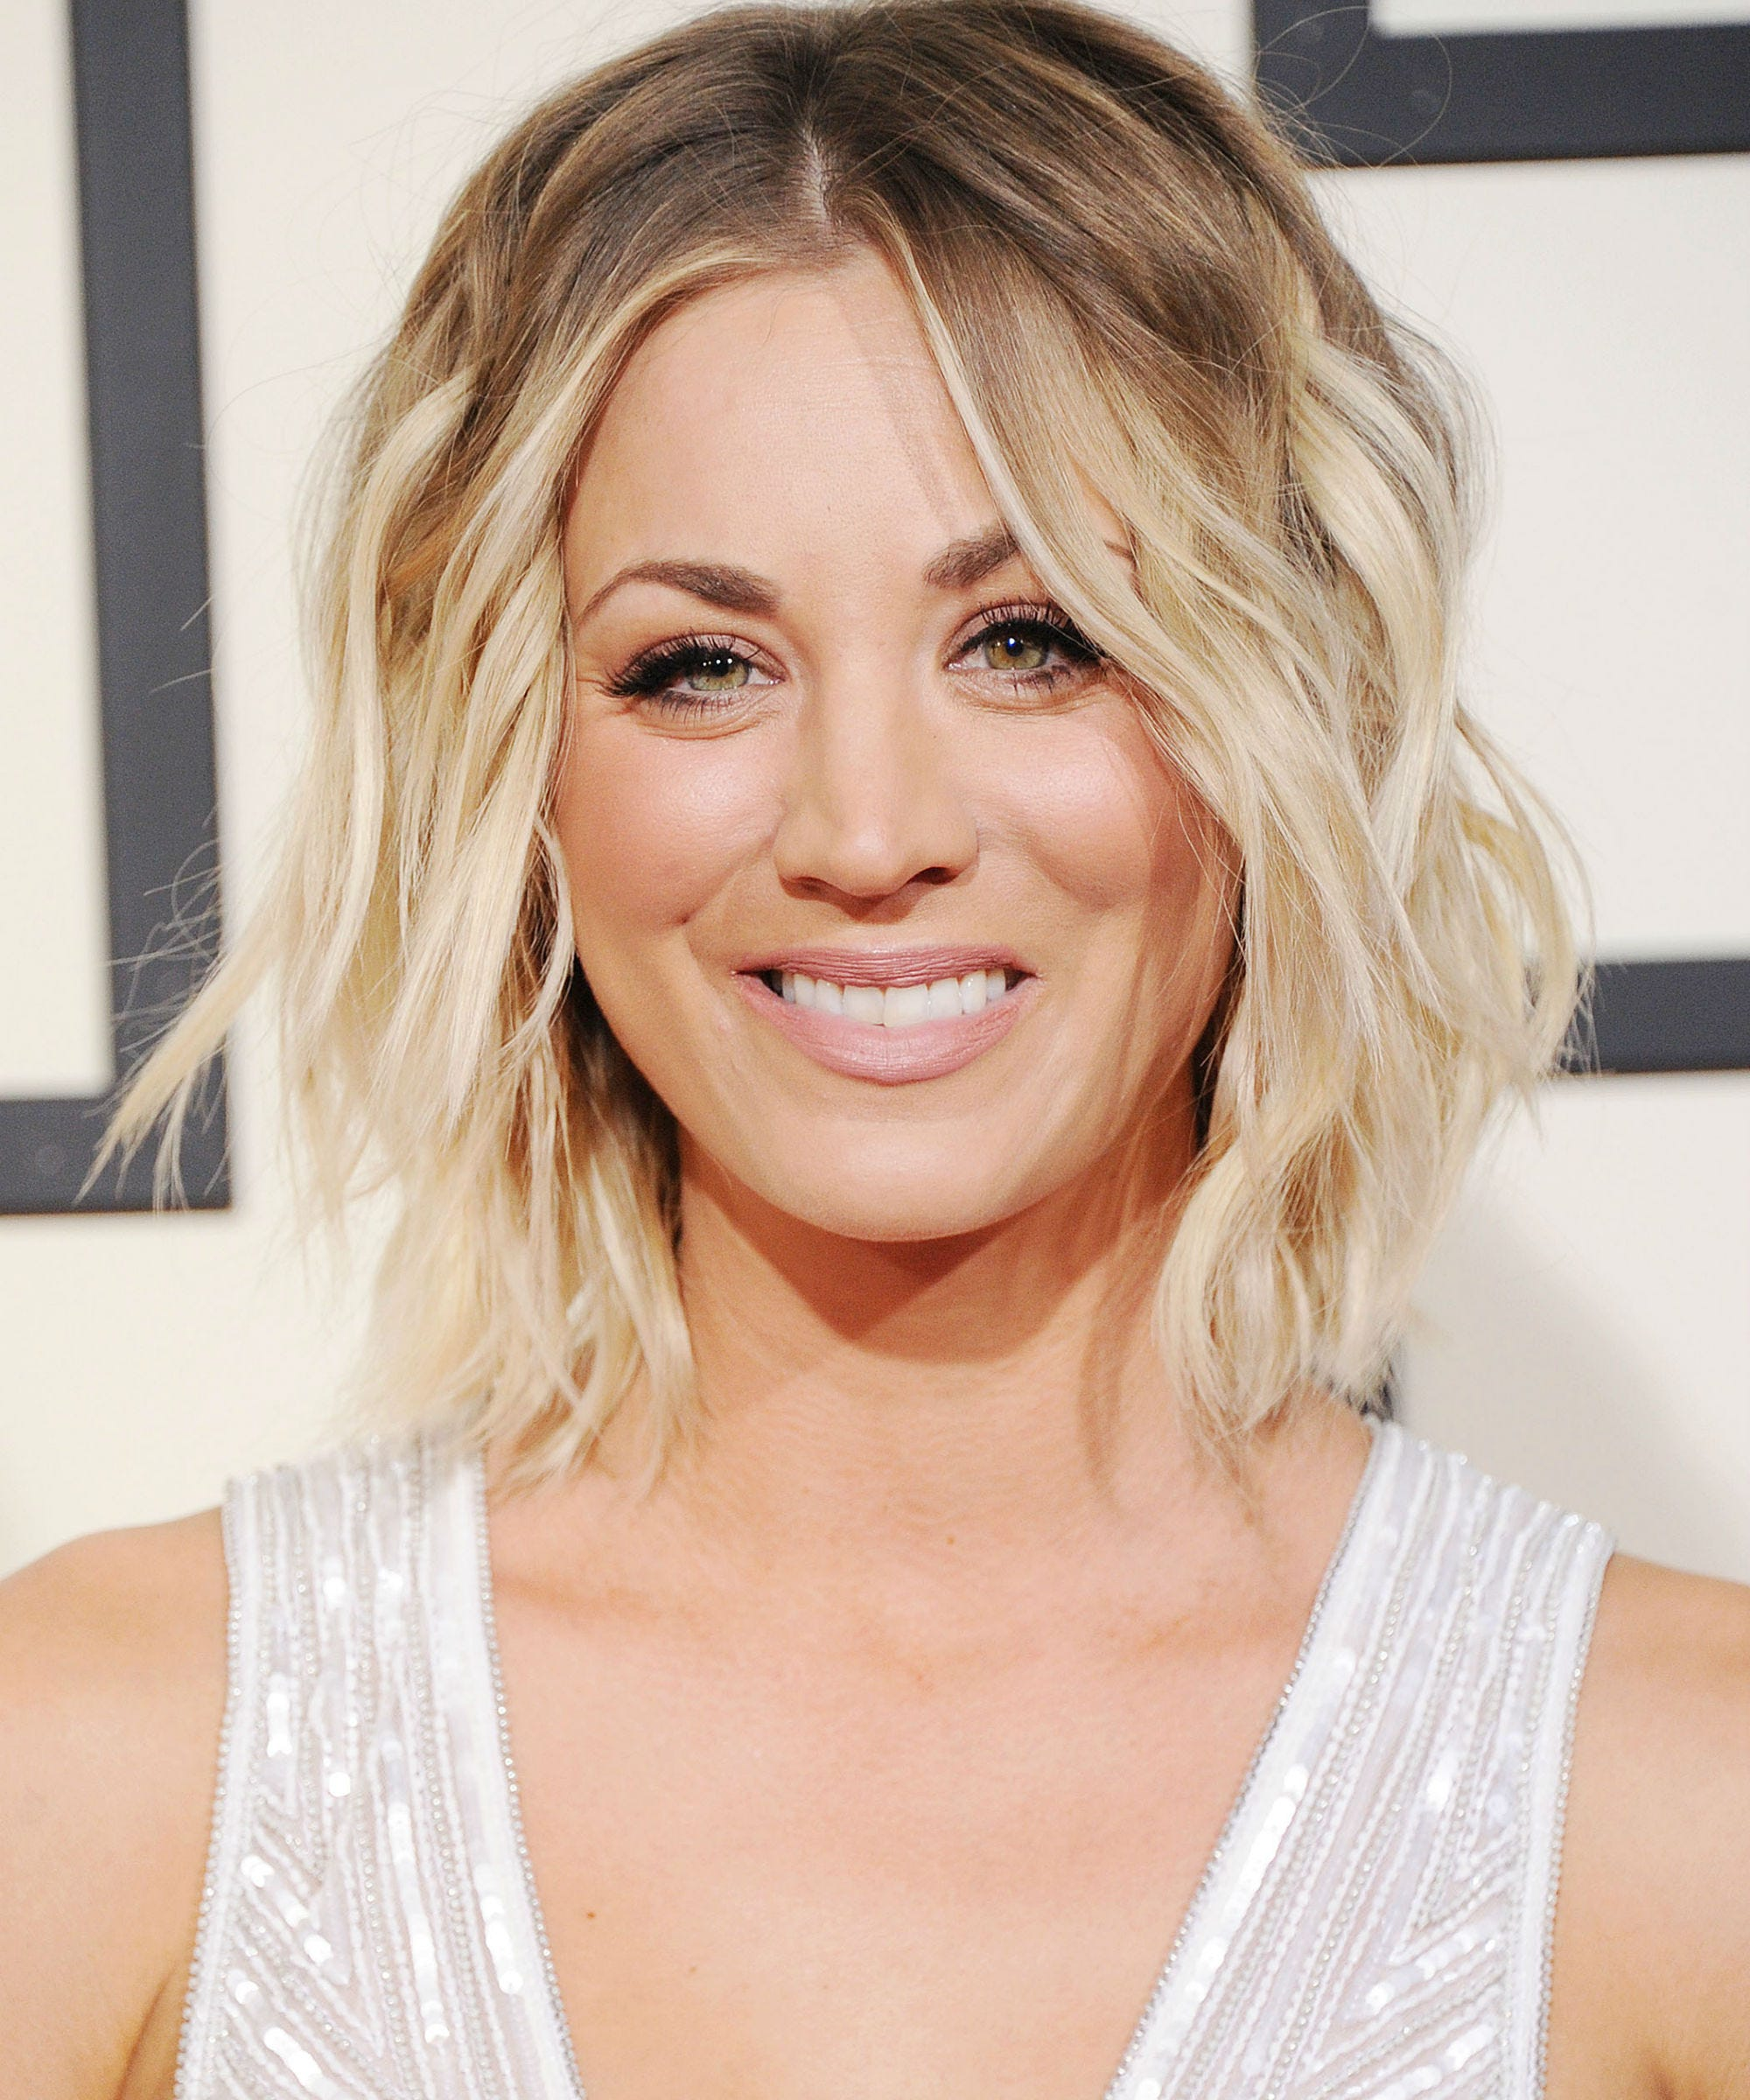 Snapchat Kaley Cuoco nude photos 2019